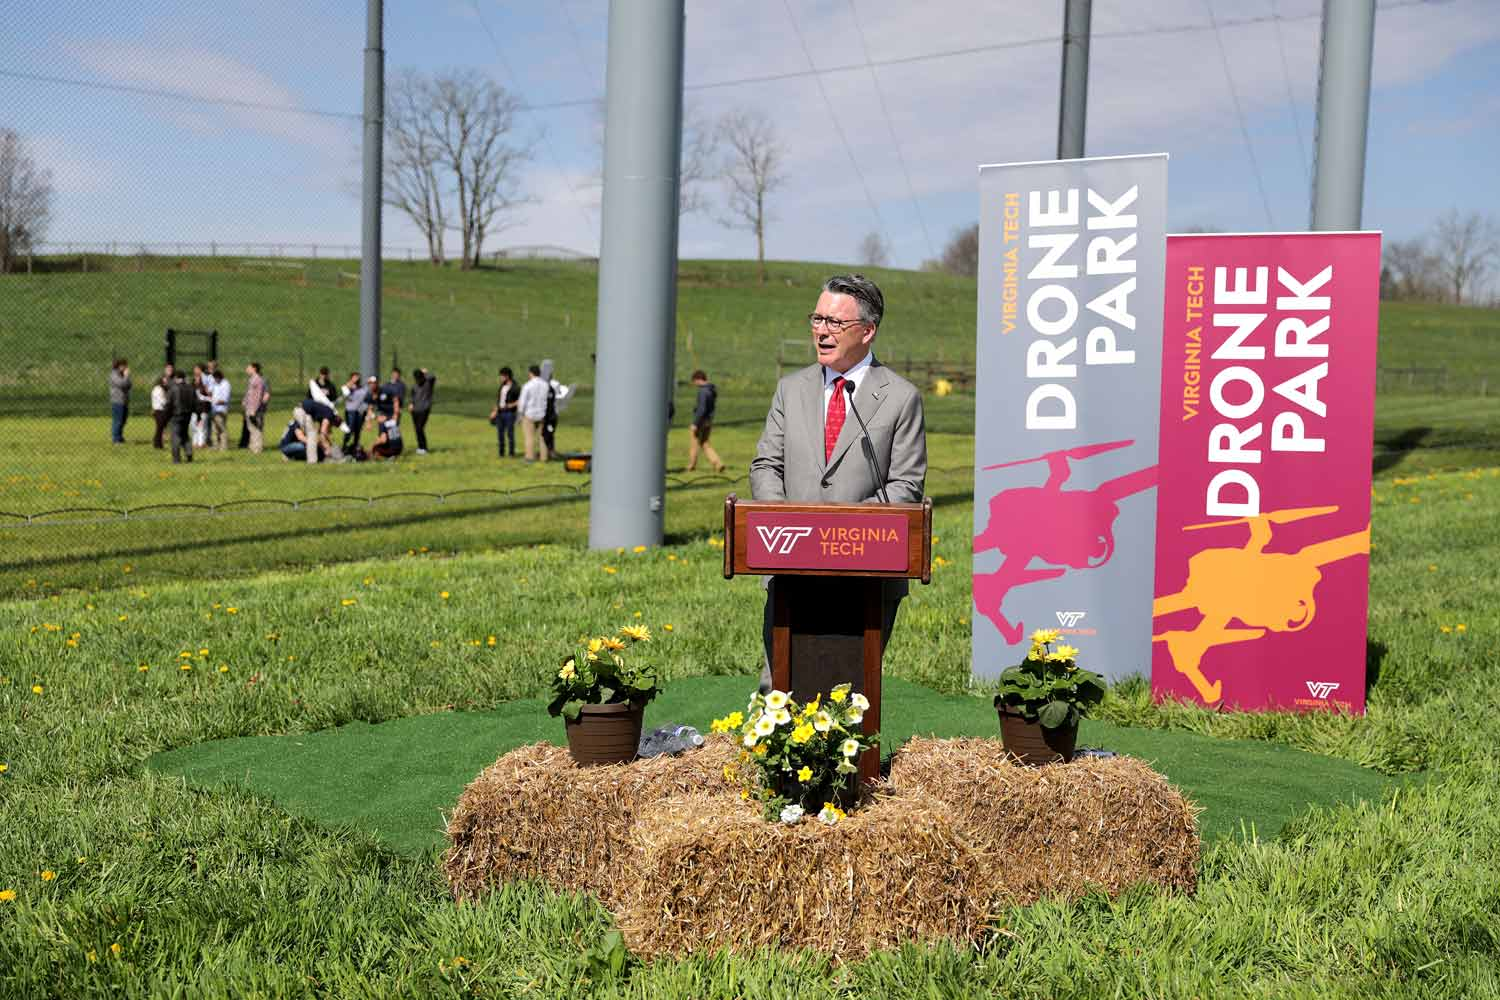 President Sands speaks at the opening ceremony for the drone park at a lectern in front of the netted park walls.